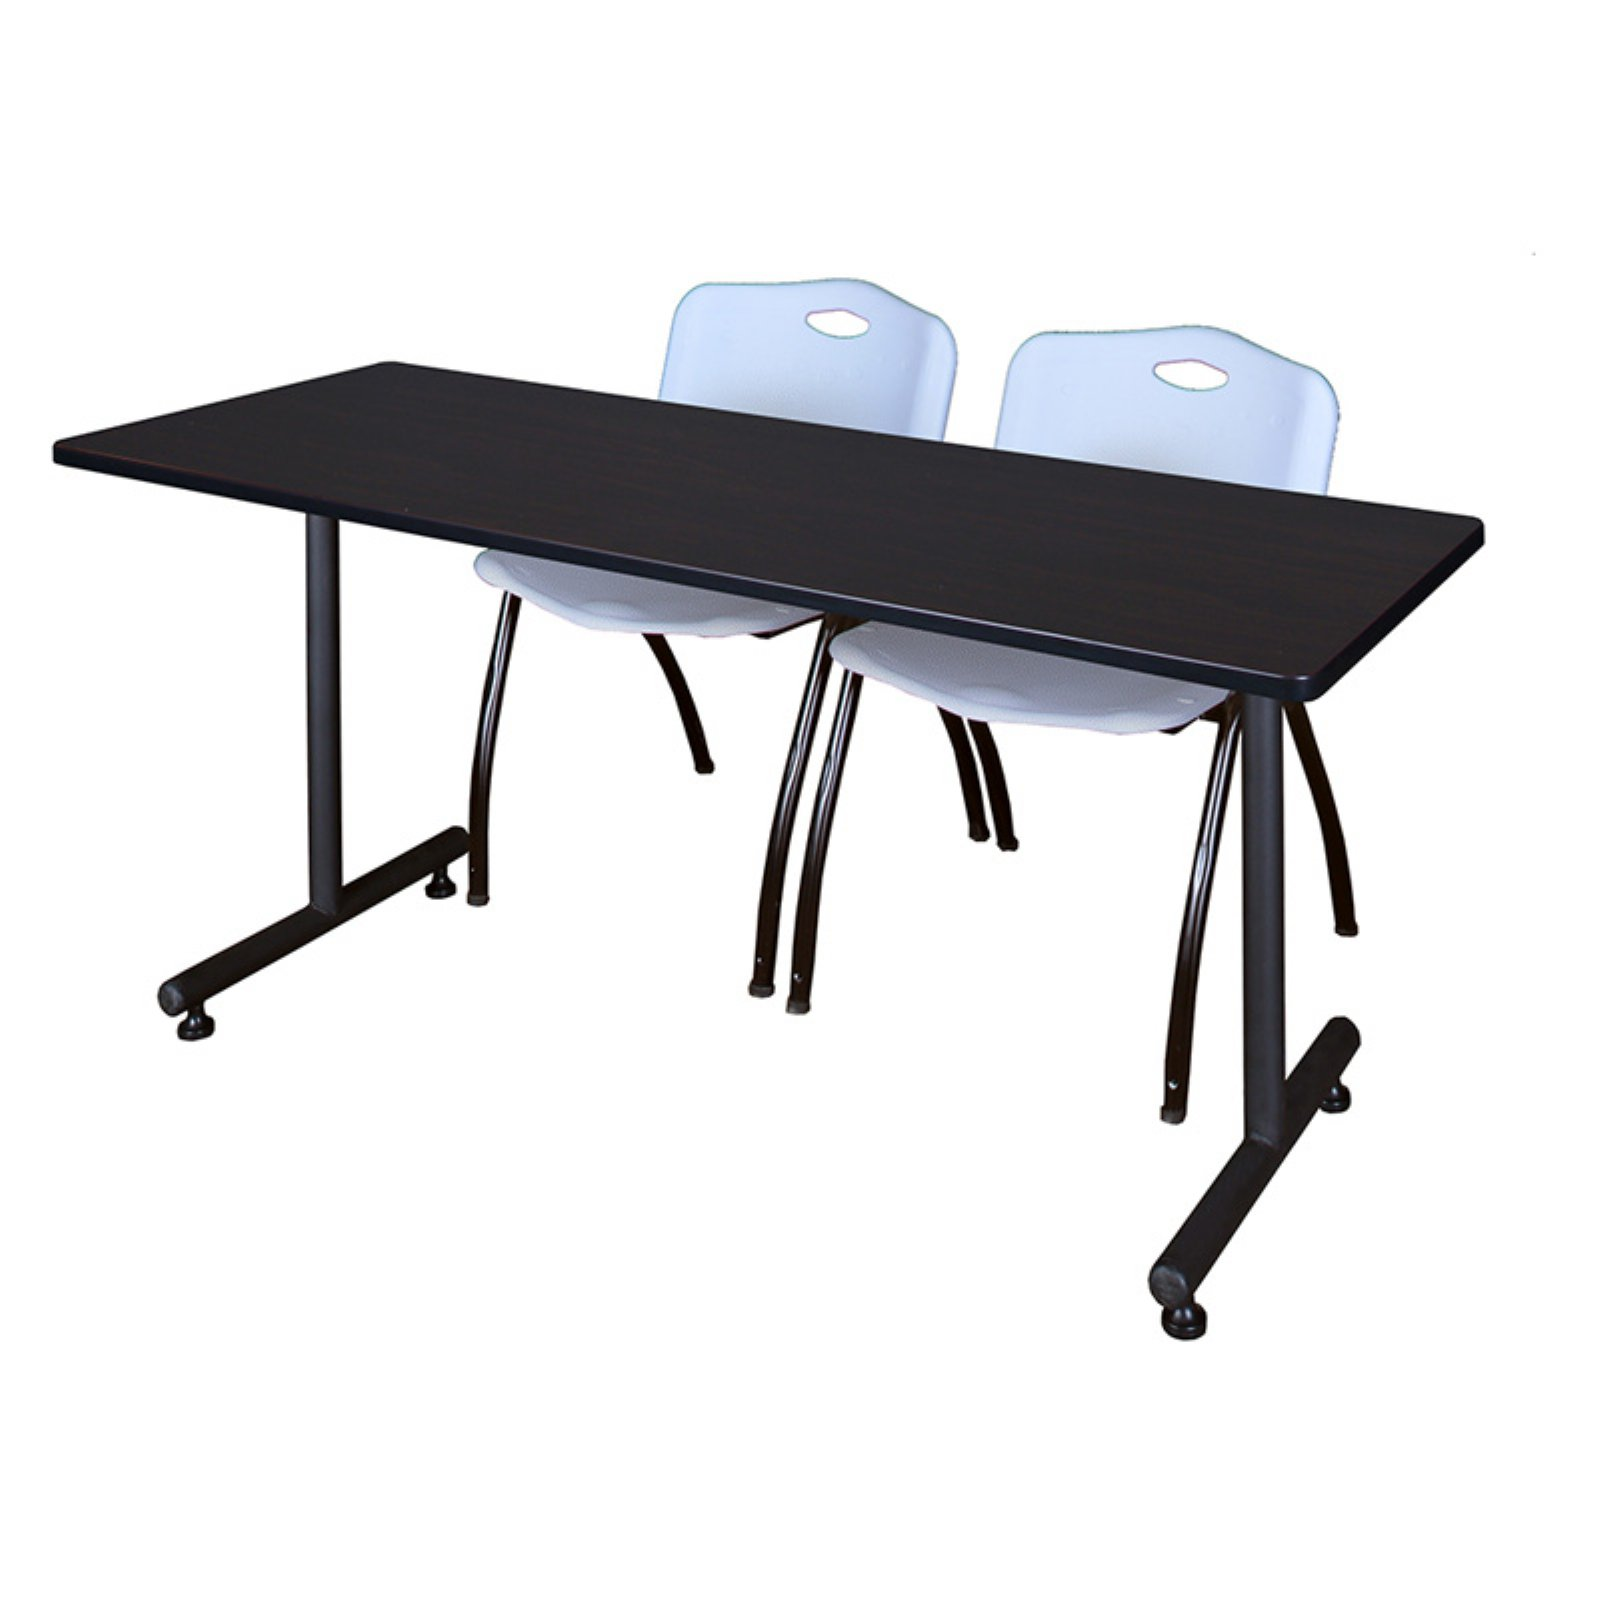 "Kobe 42"" x 24"" Mocha Walnut Mobile Training Table and 2 'M' Stack Chairs, Multiple Colors"